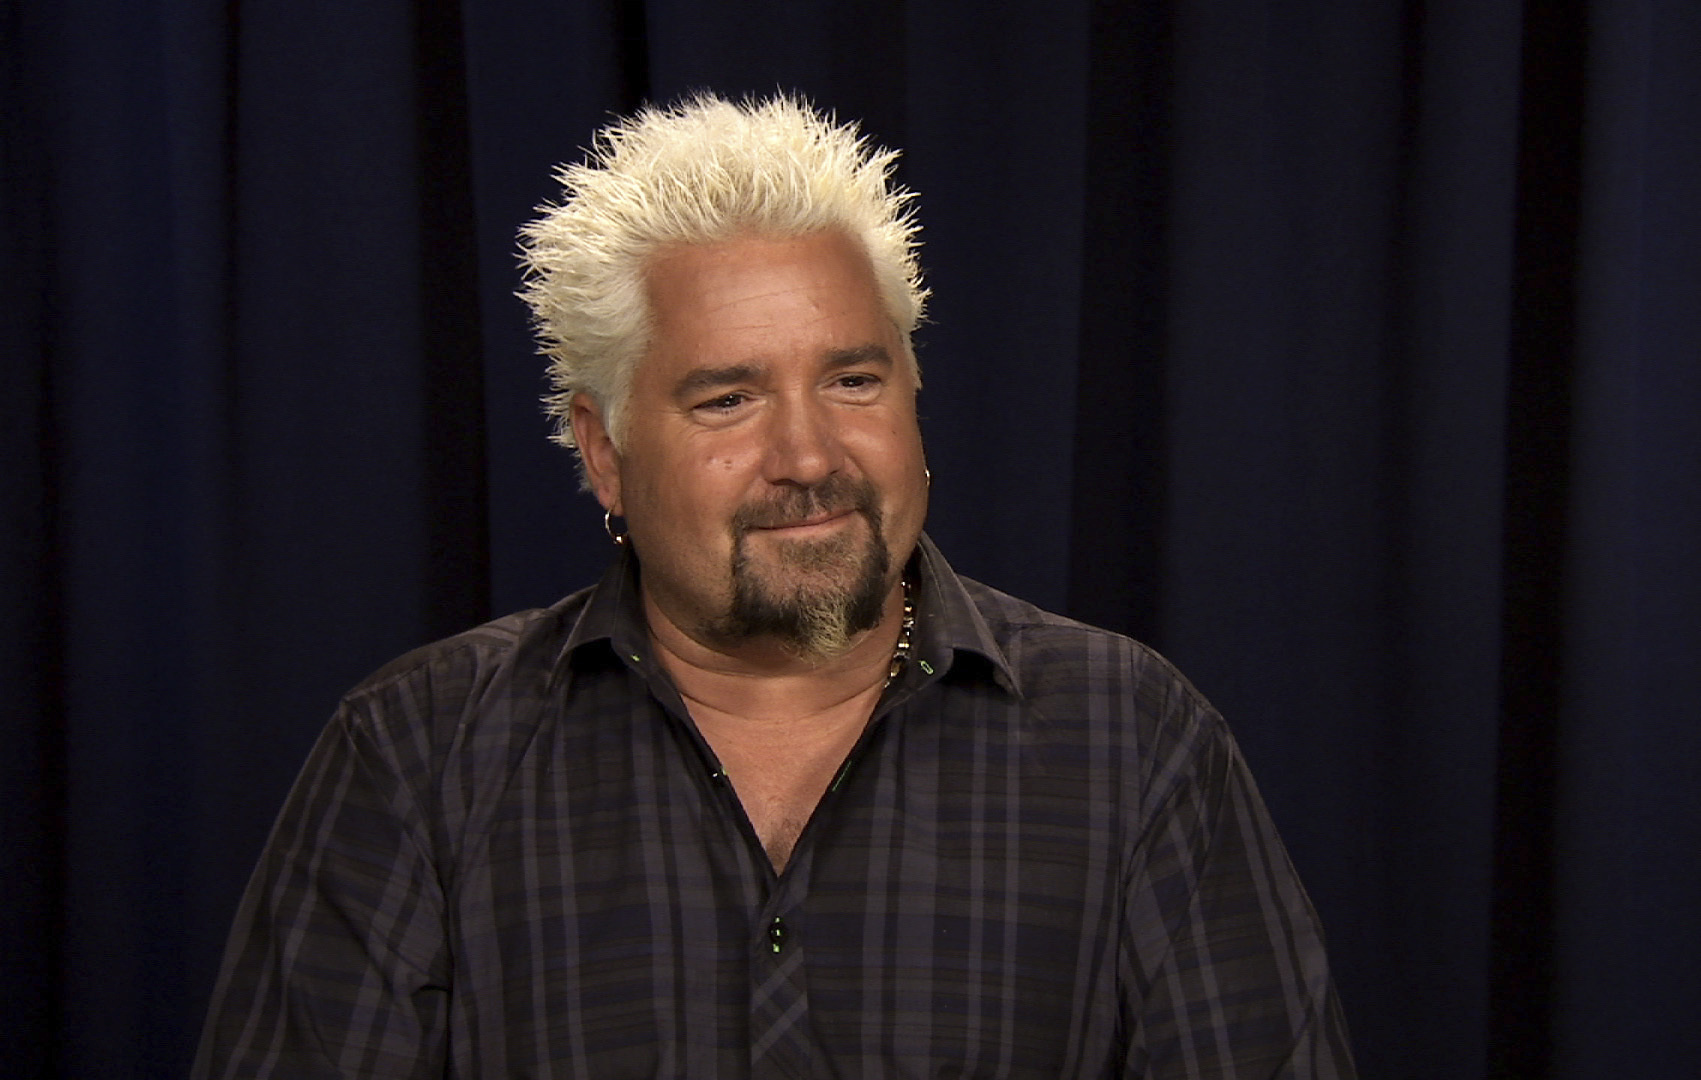 Guy Fieri says he is a...